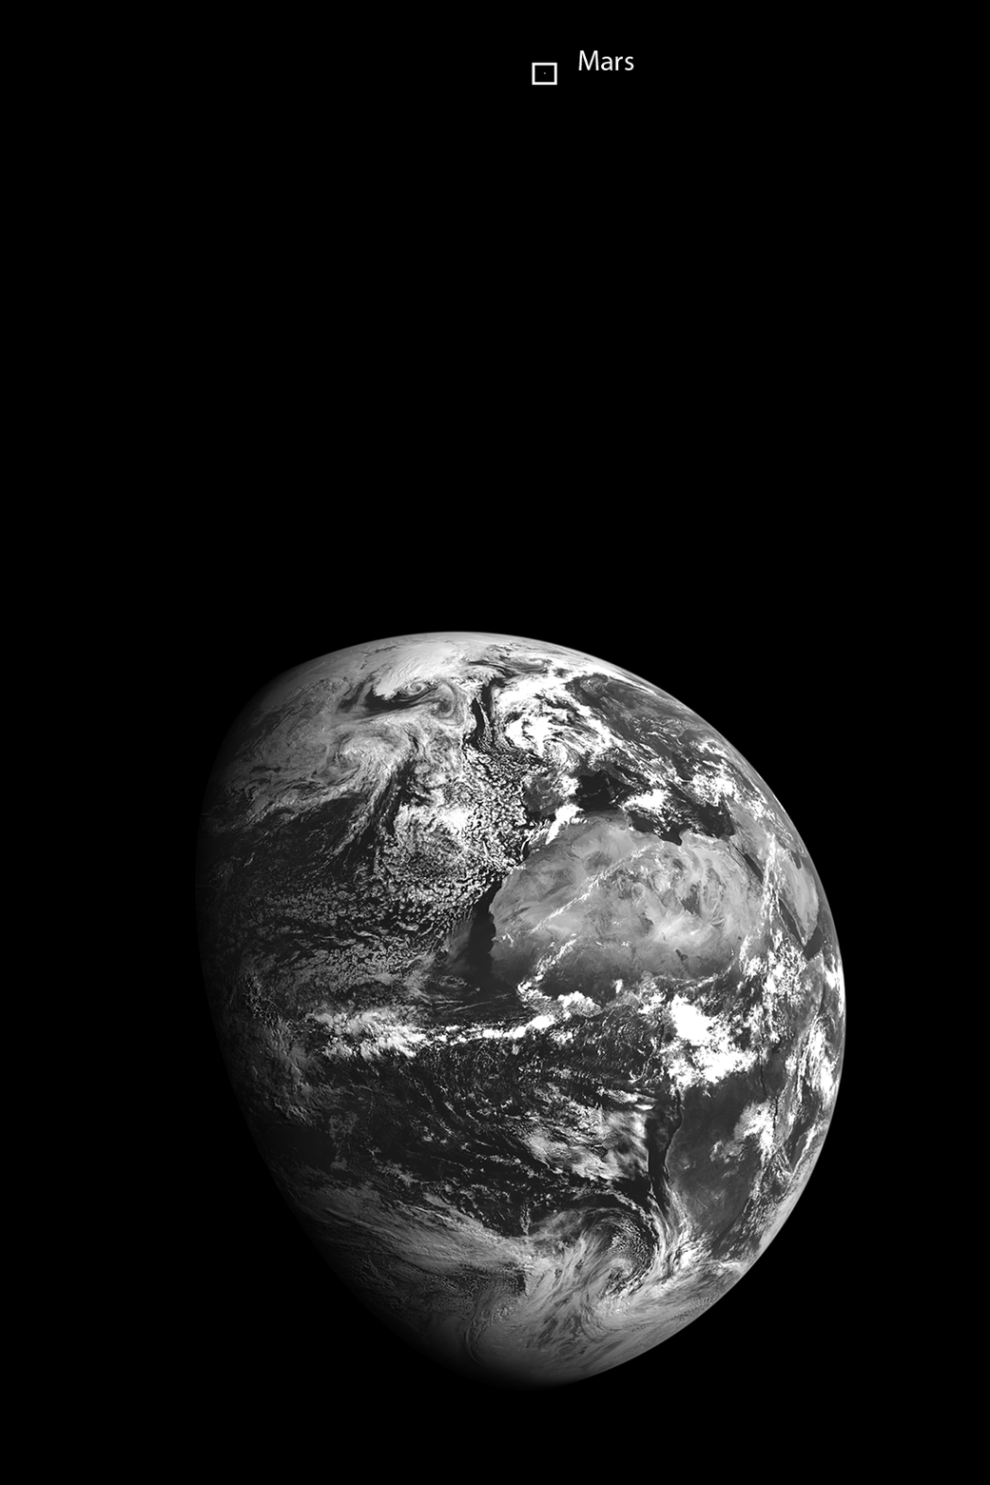 Here S What A Picture Of Both Earth And Mars Together Look Like Nasa Earth Mars And Earth Planets